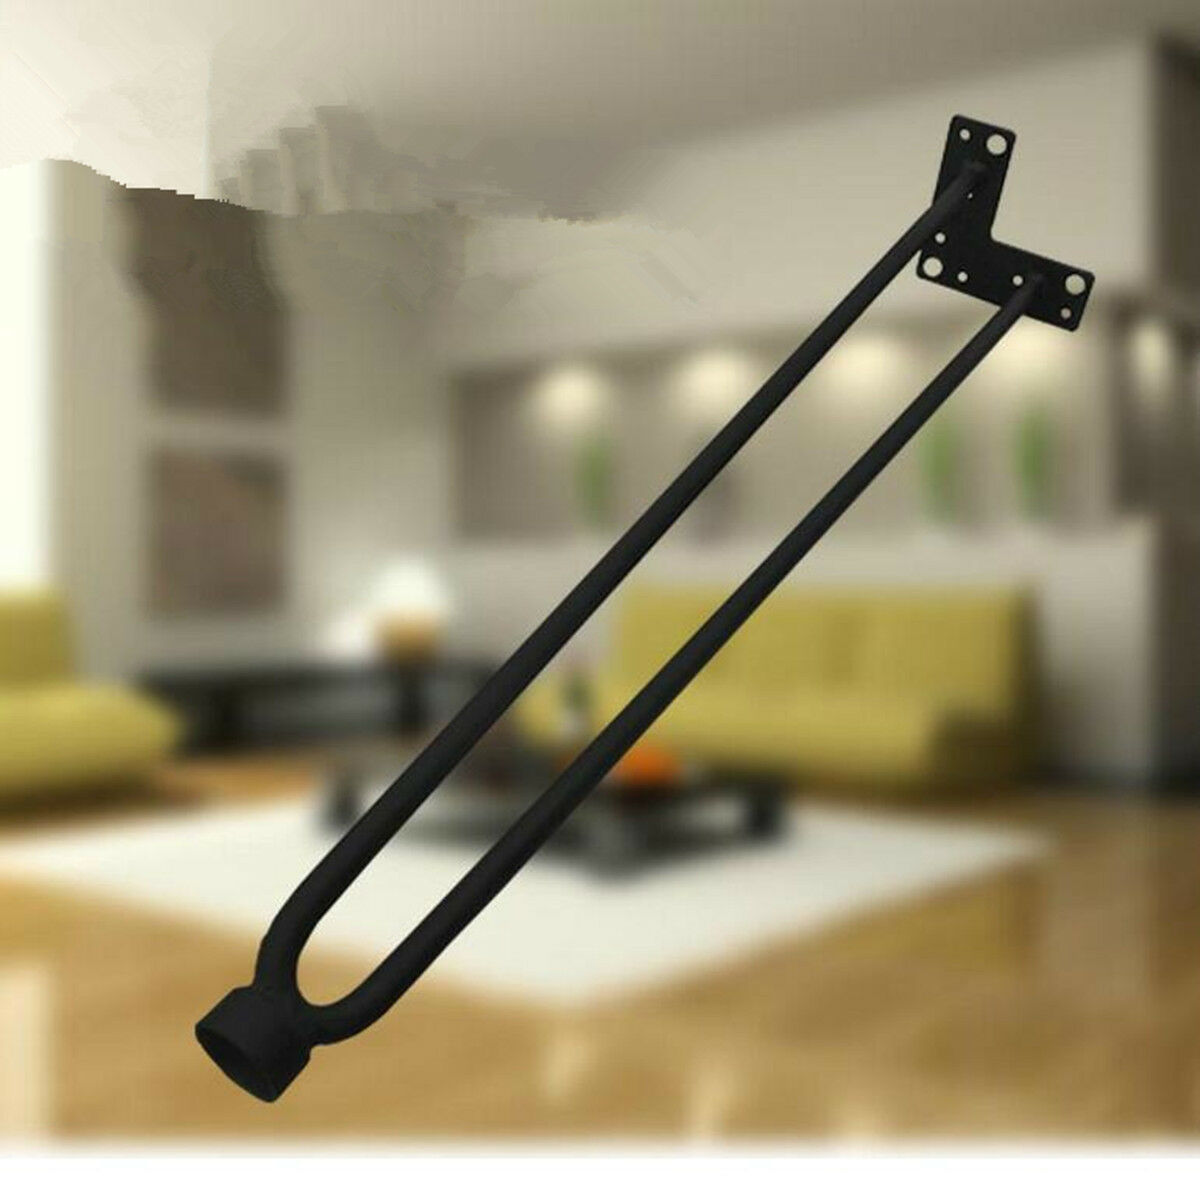 4 x 16 table hairpin legs raw steel furniture coffee table legs 40cm height picclick au. Black Bedroom Furniture Sets. Home Design Ideas